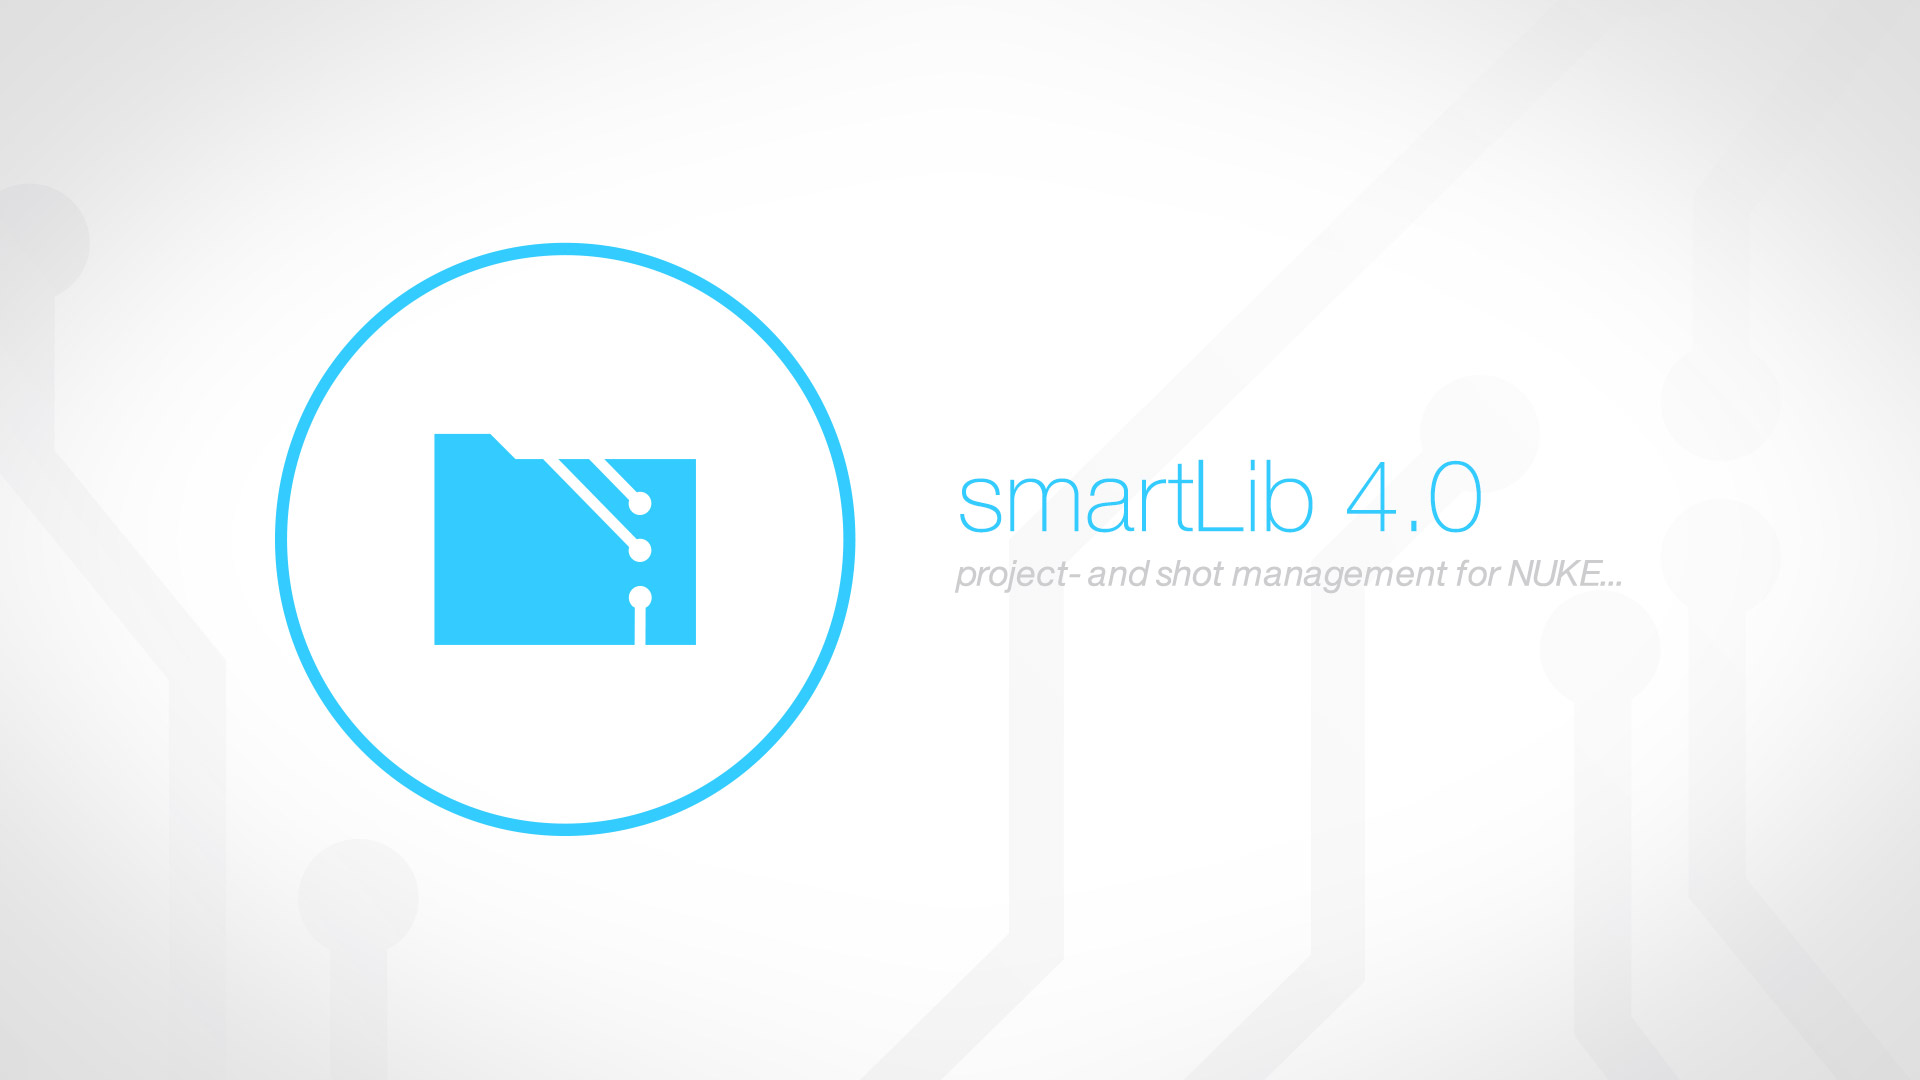 Published smartLib 4.0